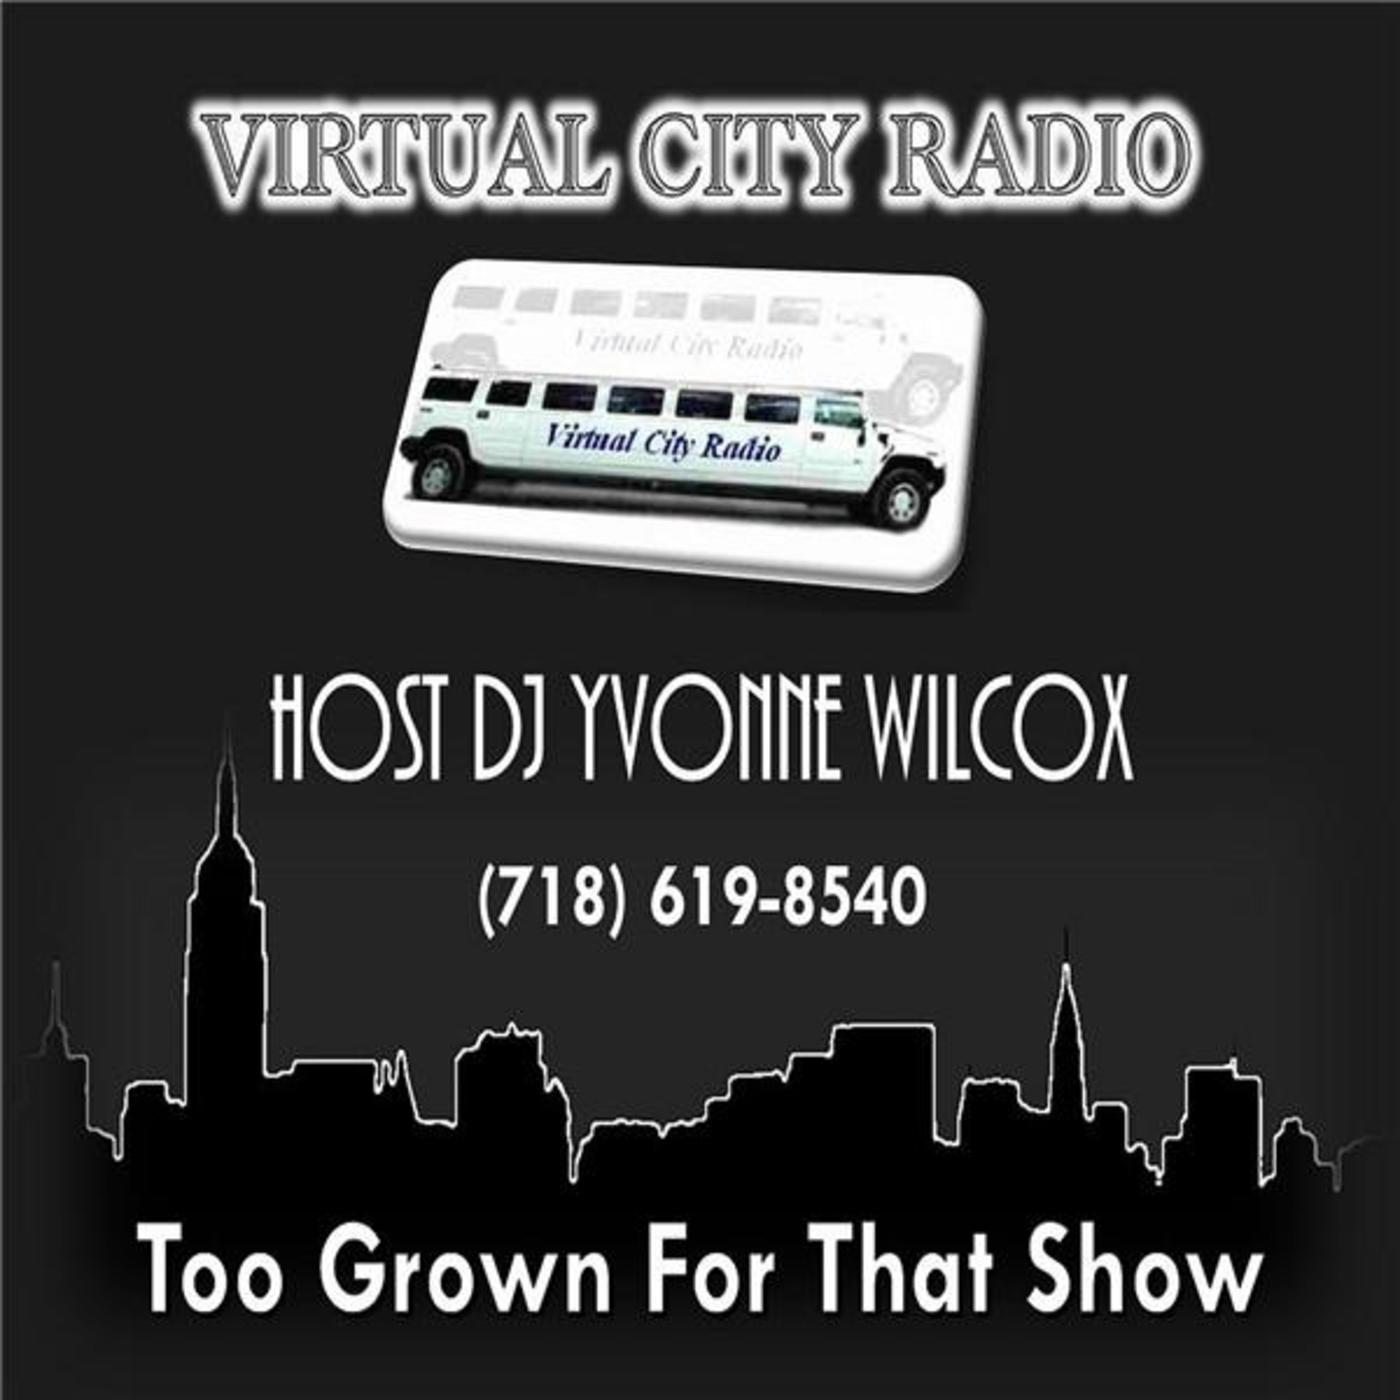 Virtual City Radio - Too Grown For That Show by Host DJ Yvonne Wilcox